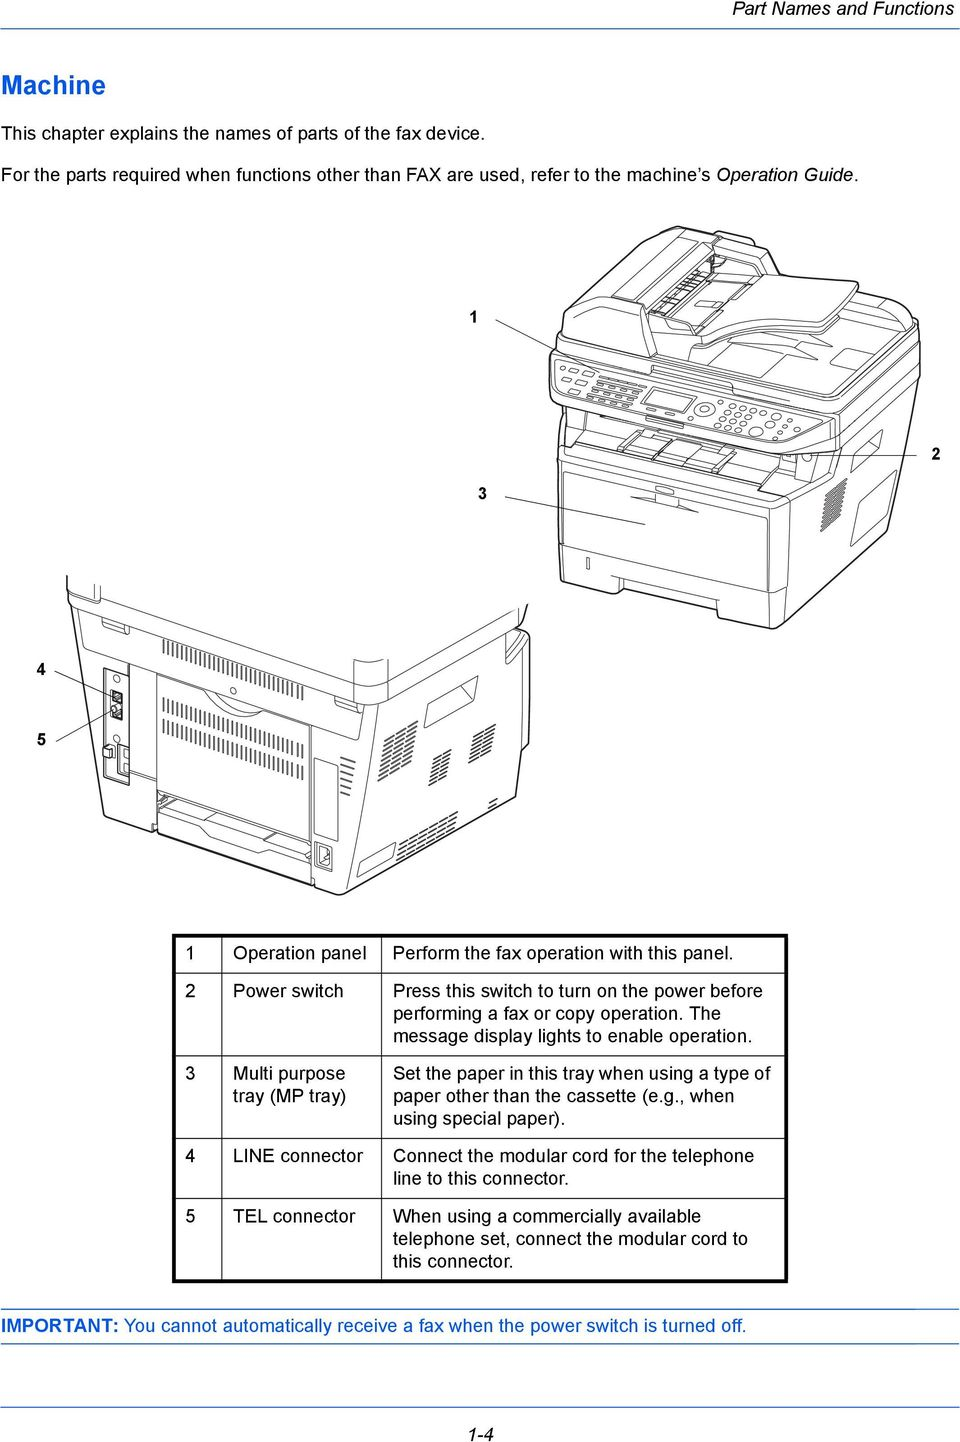 The message display lights to enable operation. 3 Multi purpose tray (MP tray) Set the paper in this tray when using a type of paper other than the cassette (e.g., when using special paper).